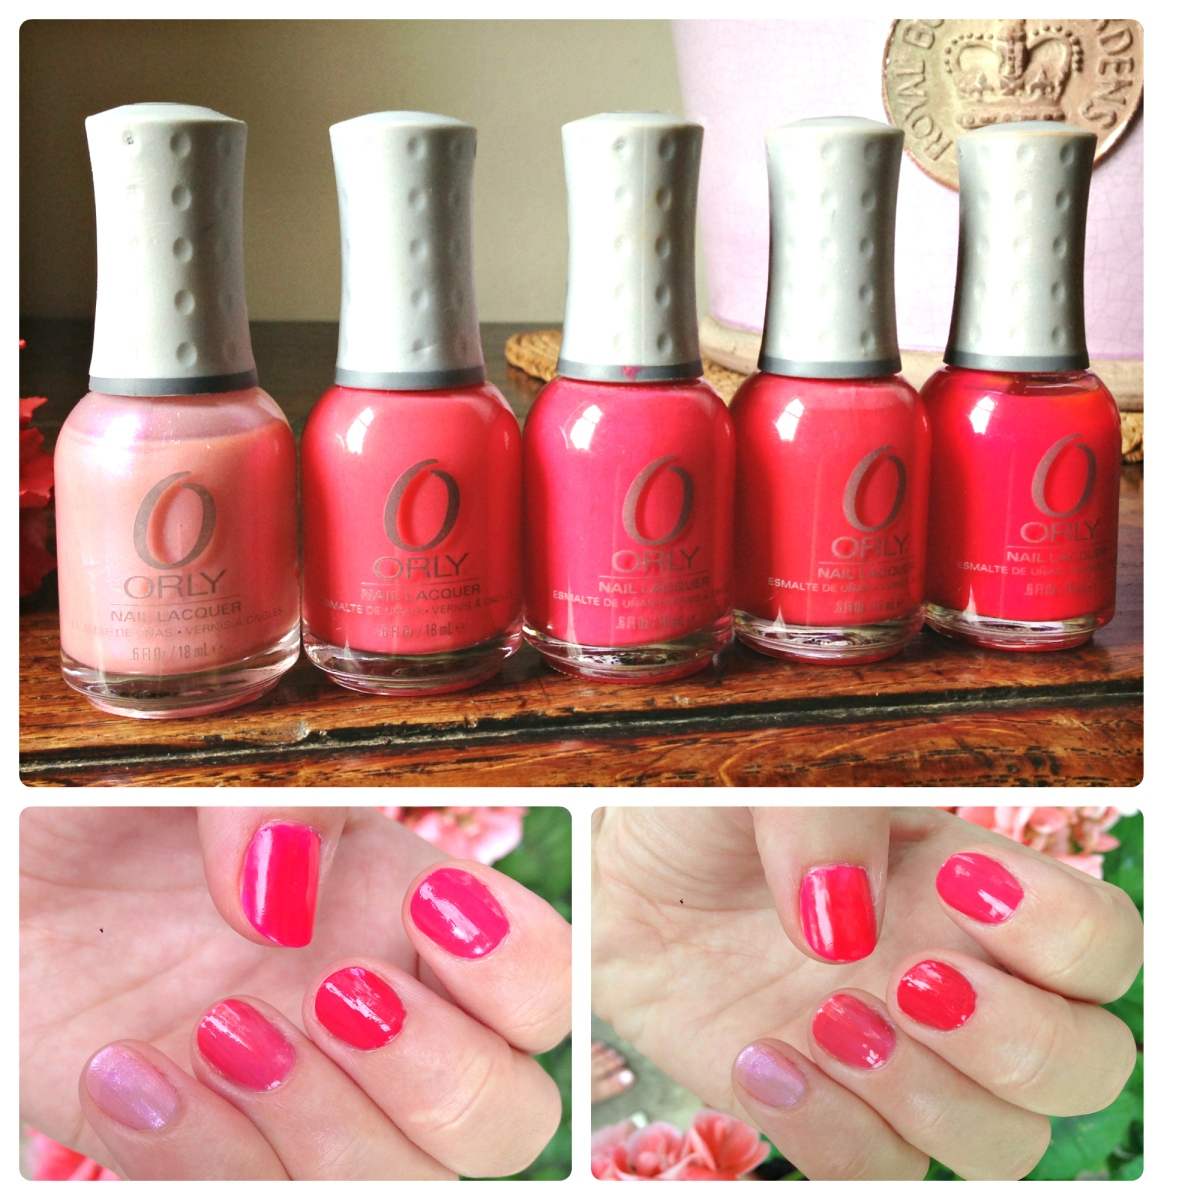 5 Perfect Pink Nail Varnishes from Orly